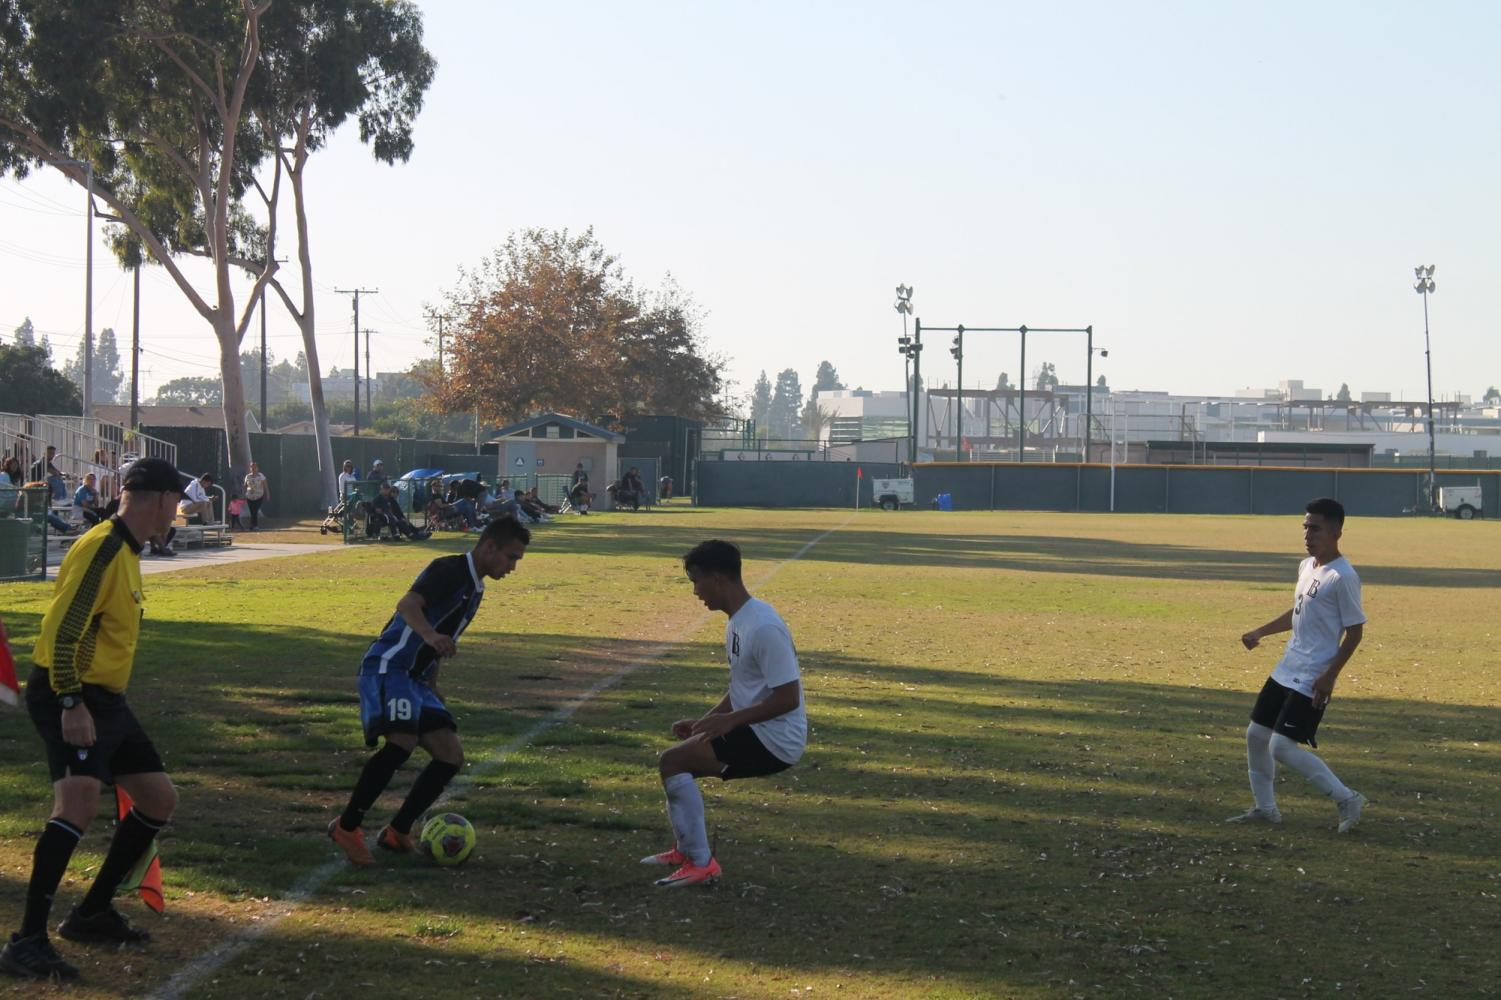 Freshman midfielder No. 19 Bryan Perez aiming for a shot-on-goal for Cerritos. The Falcons had 14 shots-on-goal however scored only two goals to beat Long Beach City College 2-0 on Tuesday, Nov. 5.